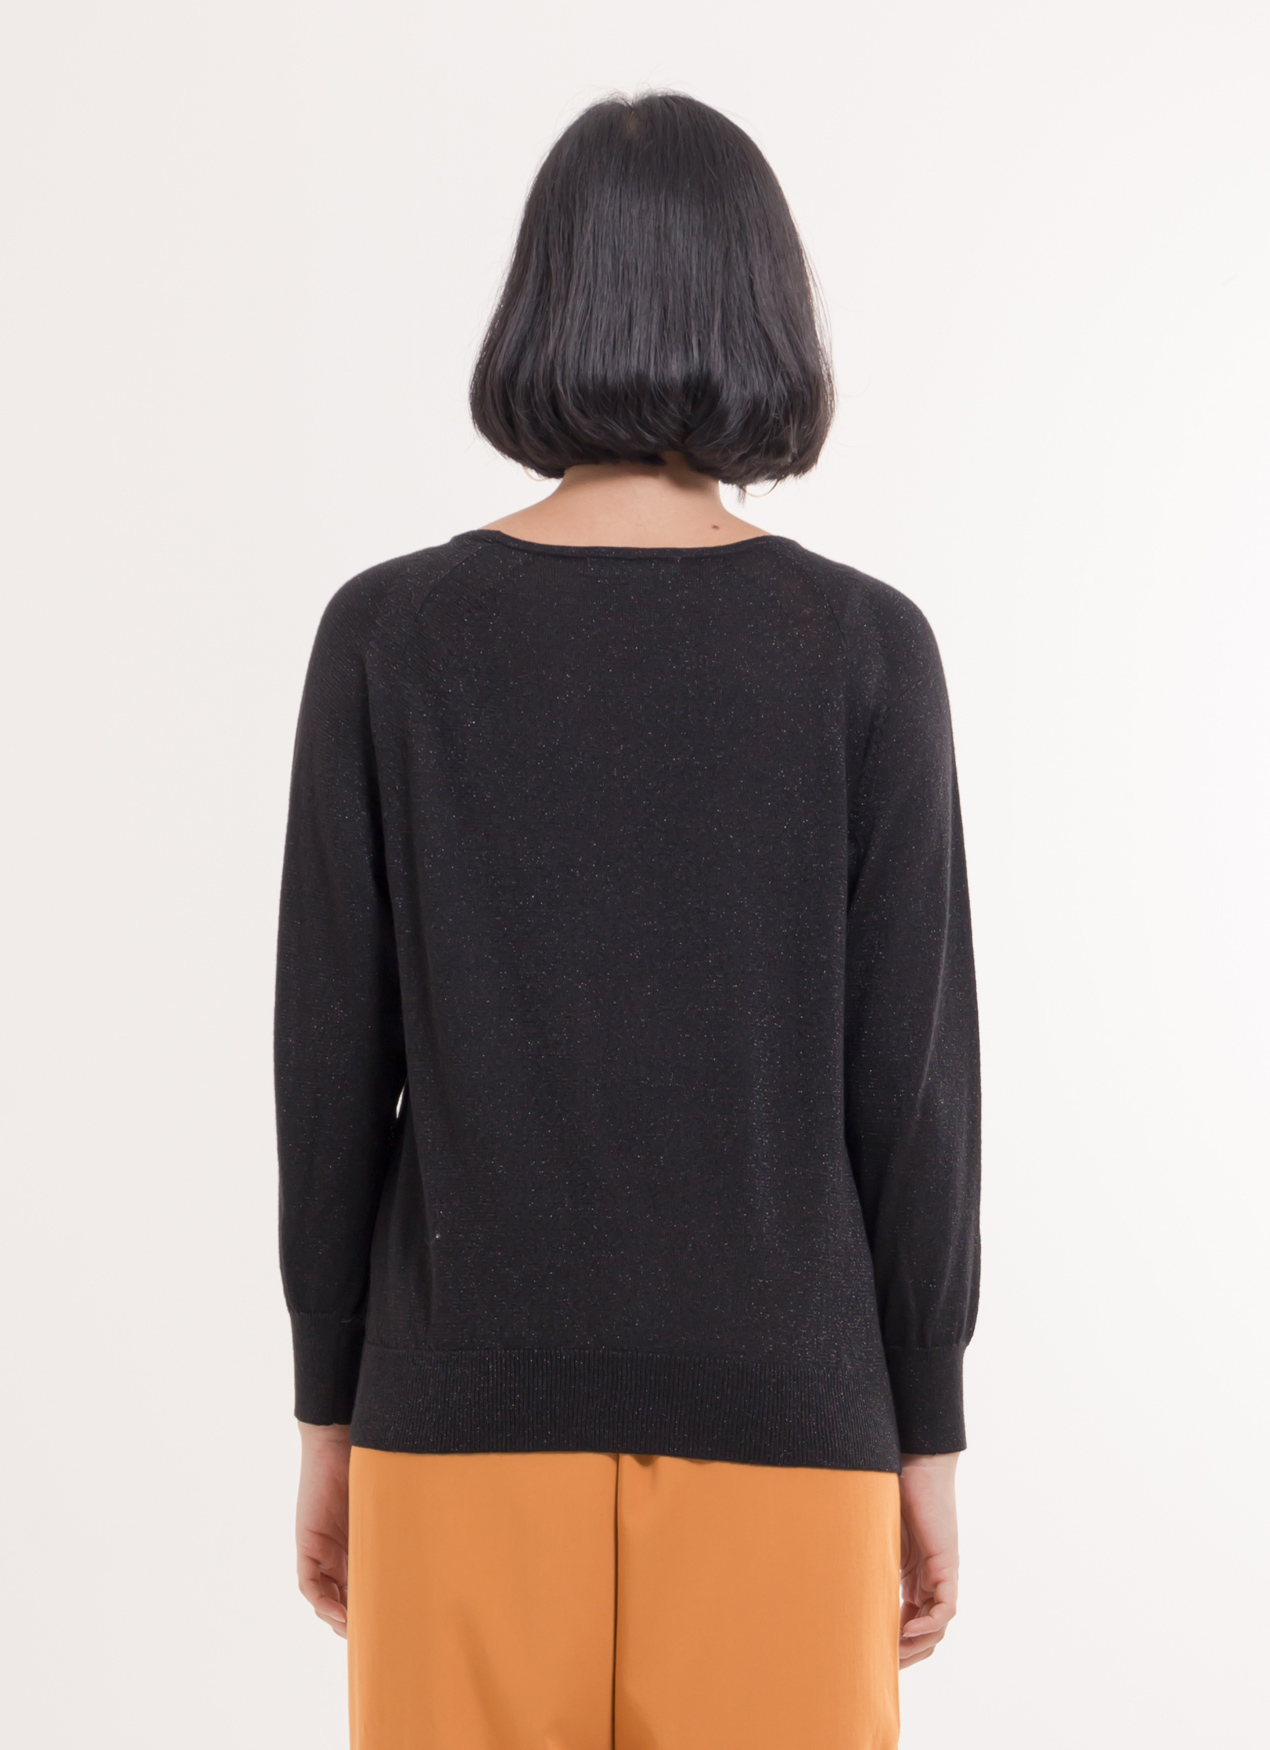 American Holic Karina Top - Black